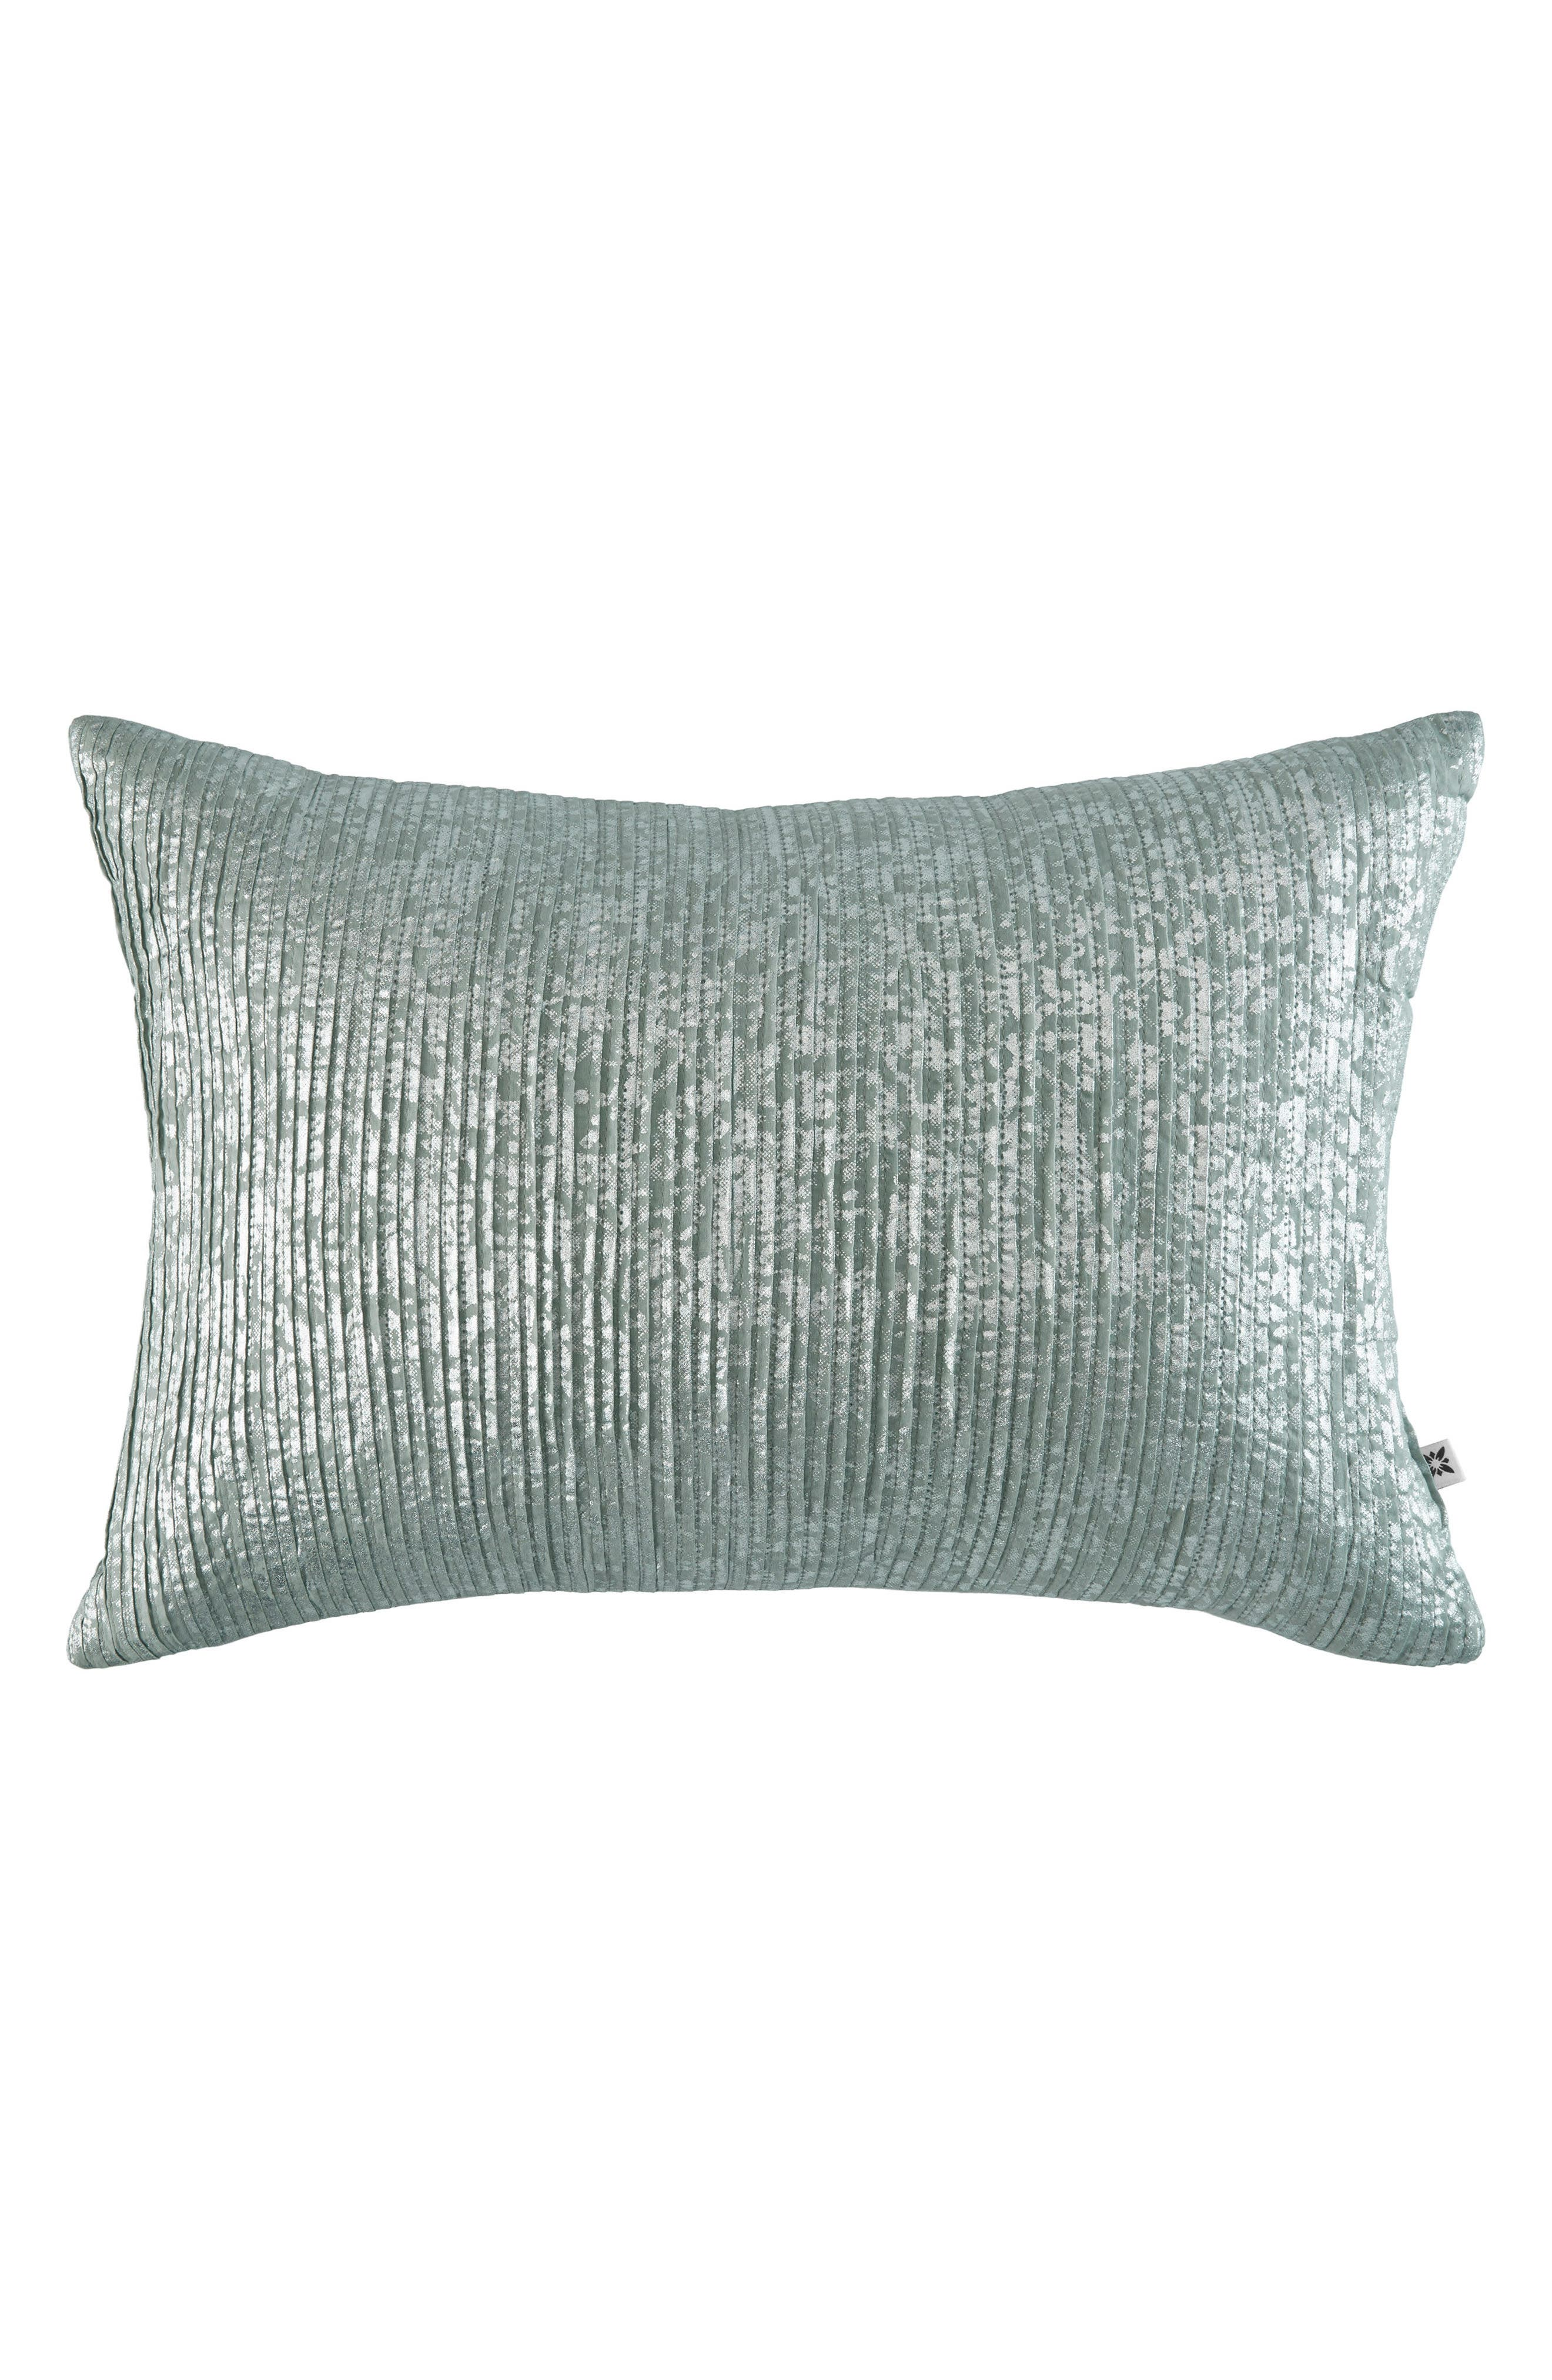 Main Image - BCBGeneration Metallic Ruched Accent Pillow